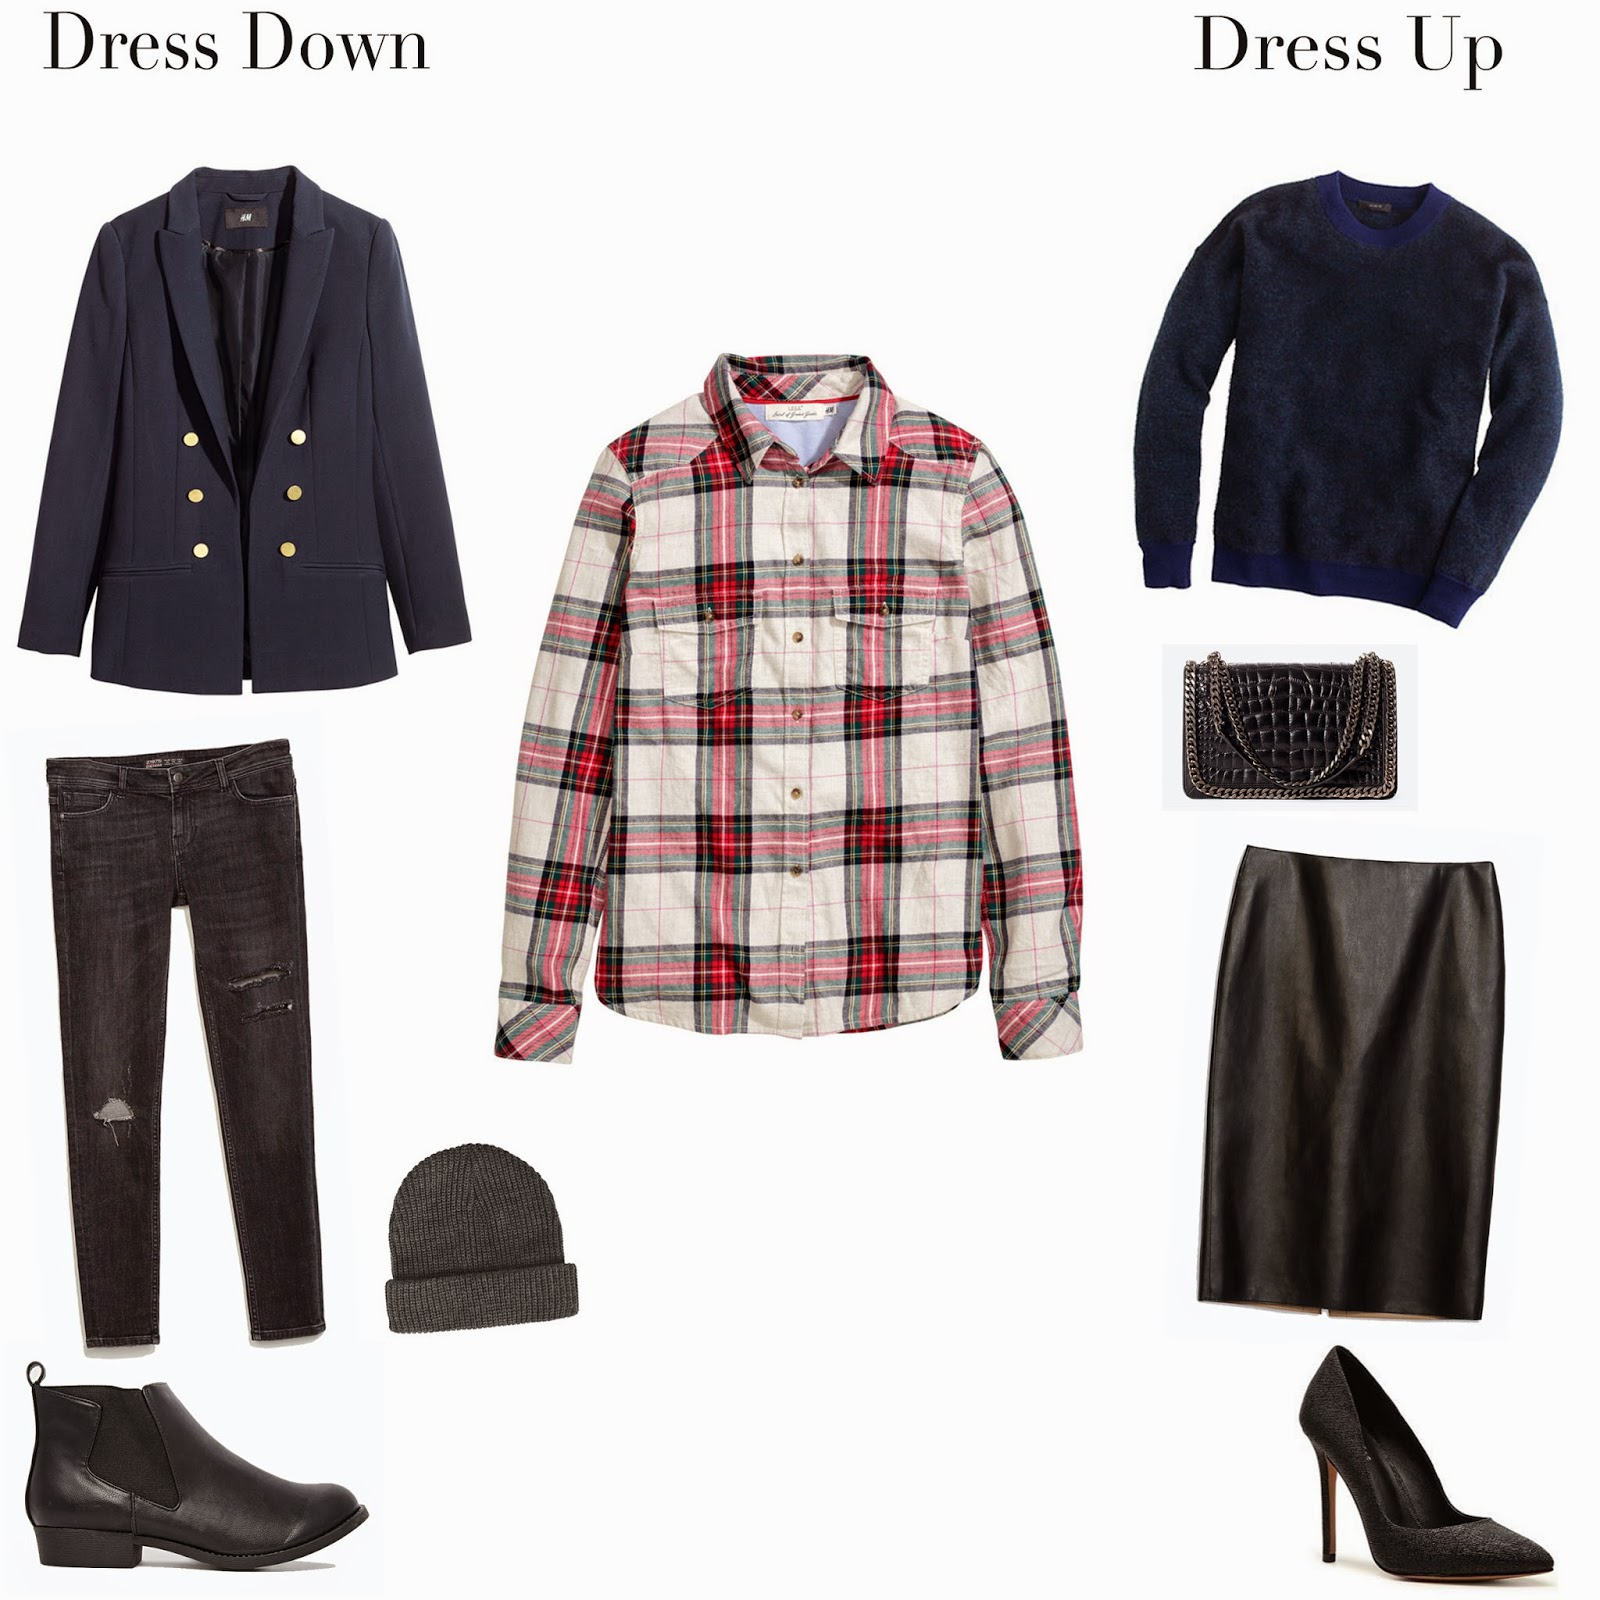 Edie's Closet, Plaid Shirt - Dress Up/Down